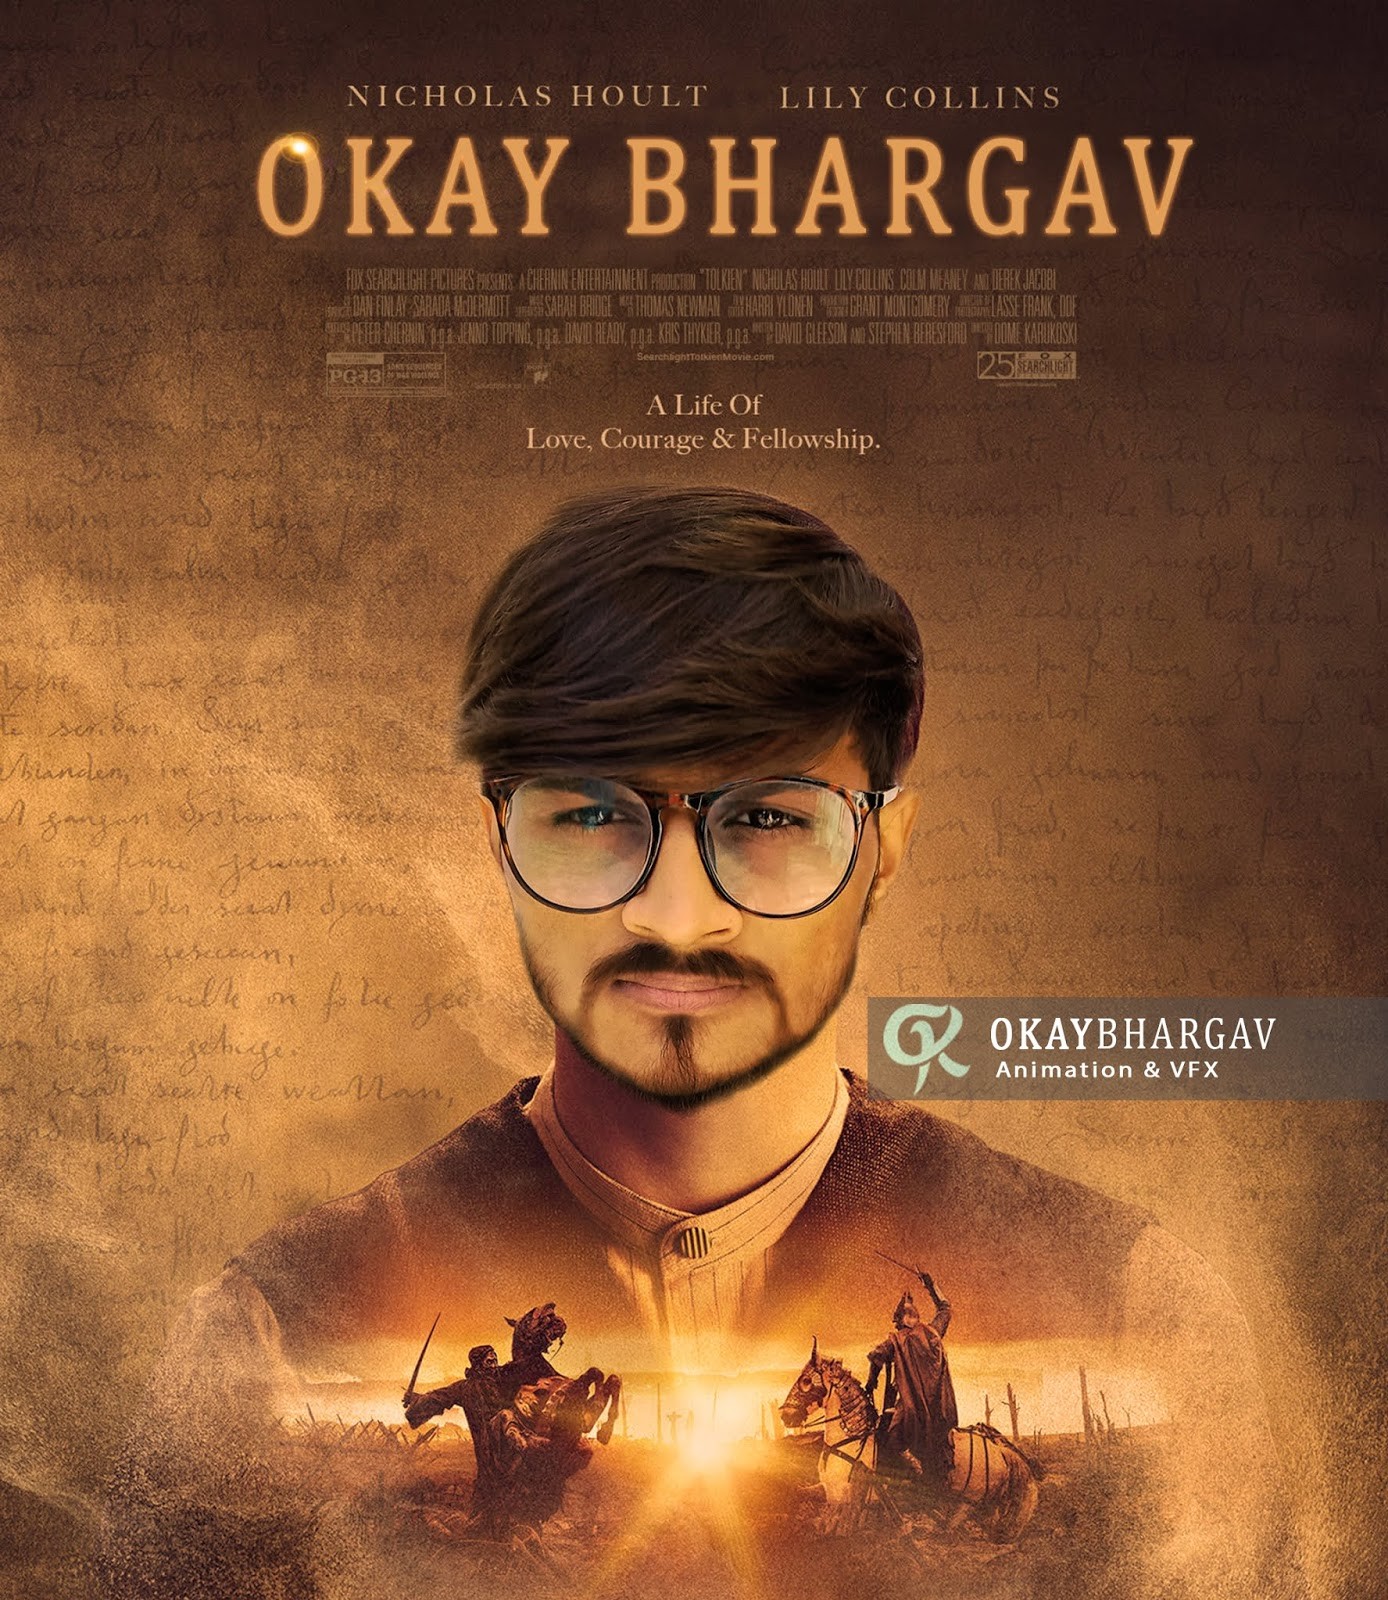 Movie Poster psd file,okaybhargav, okay bhargav